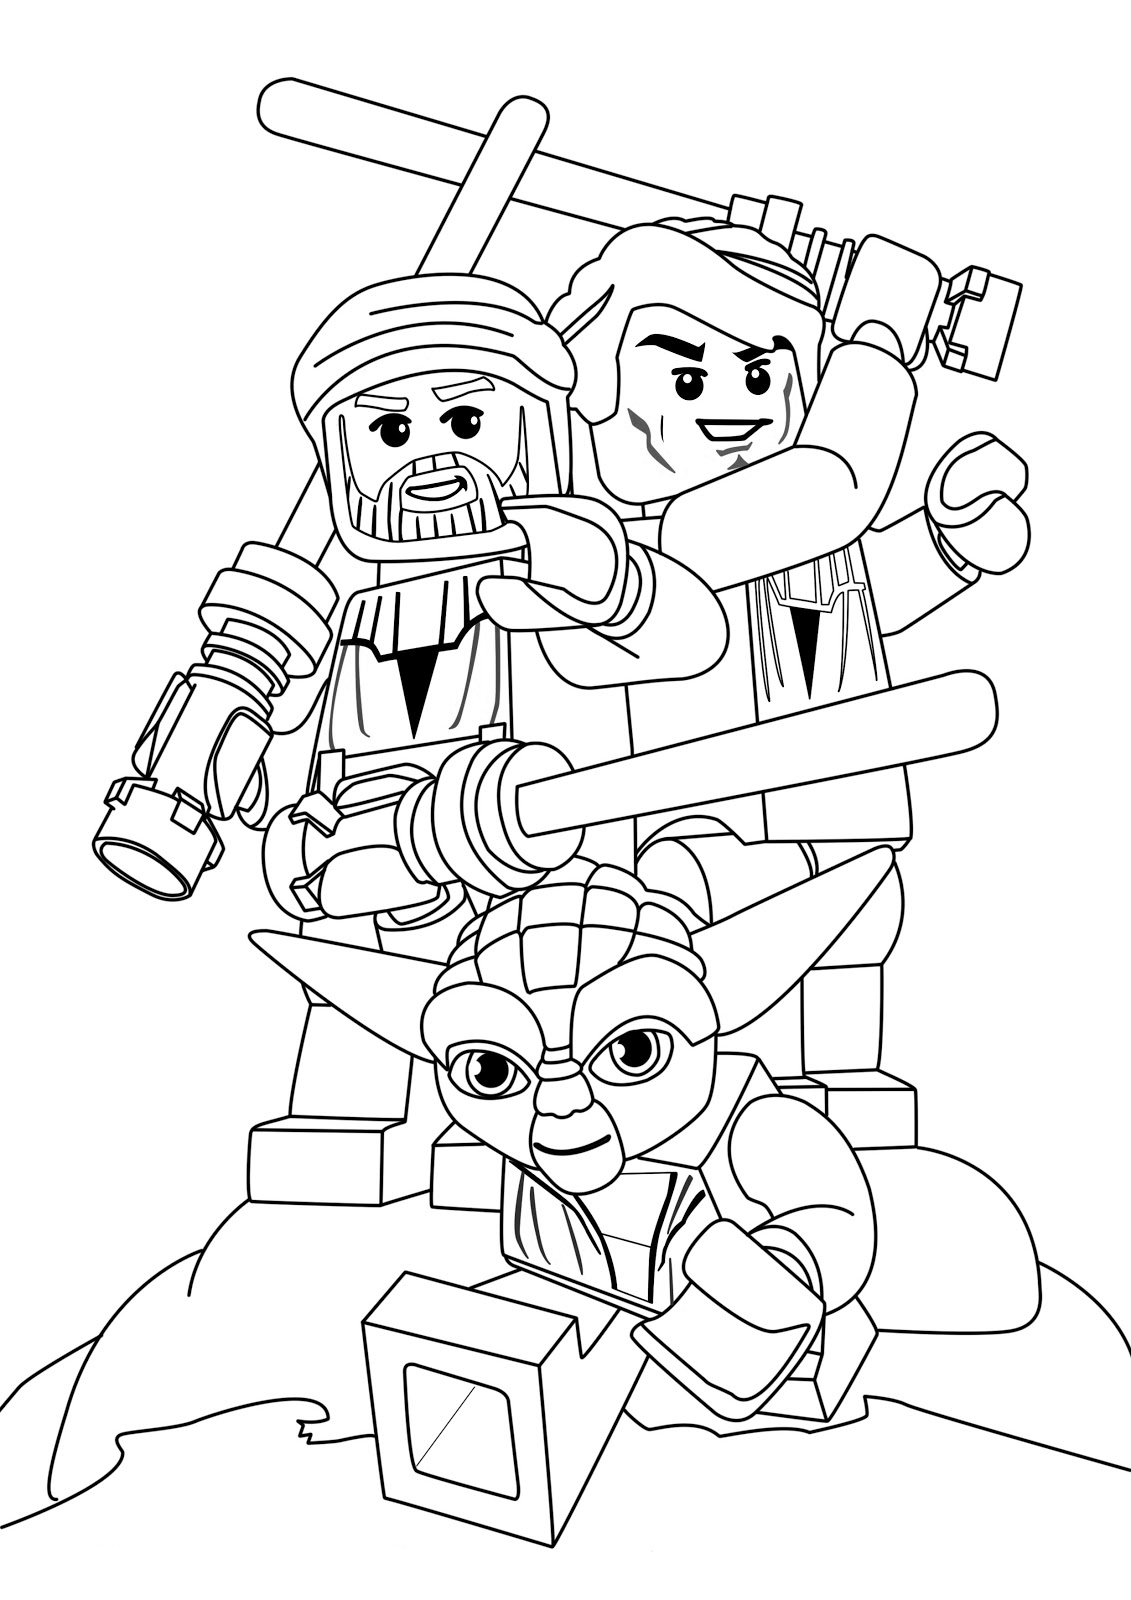 free lego star wars coloring pages lego star wars coloring pages to download and print for free coloring pages free wars star lego